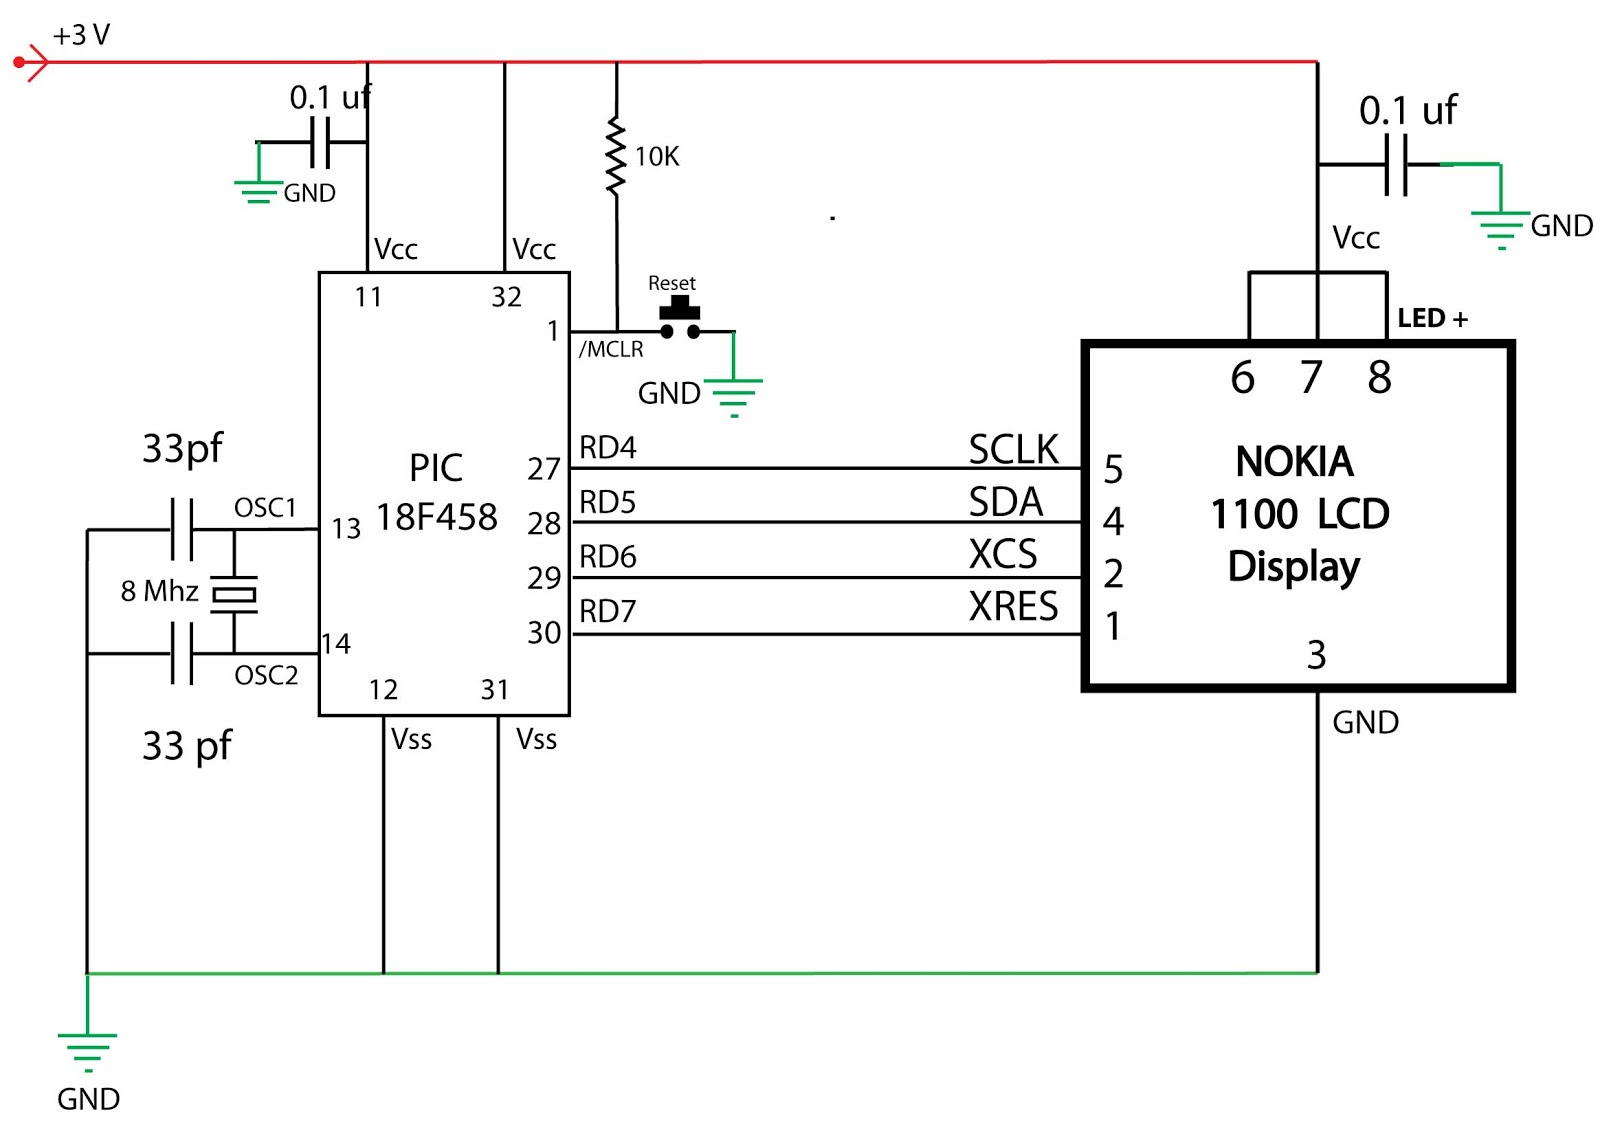 Embedded Engineering Nokia 1100 Lcd Interfacing With Microcontroller Pic Programmer Schematic Together Serial The Software Program For This Project Will Be Written In C Mplab Ide Has A Resolution Of 96 X 65 Pixels